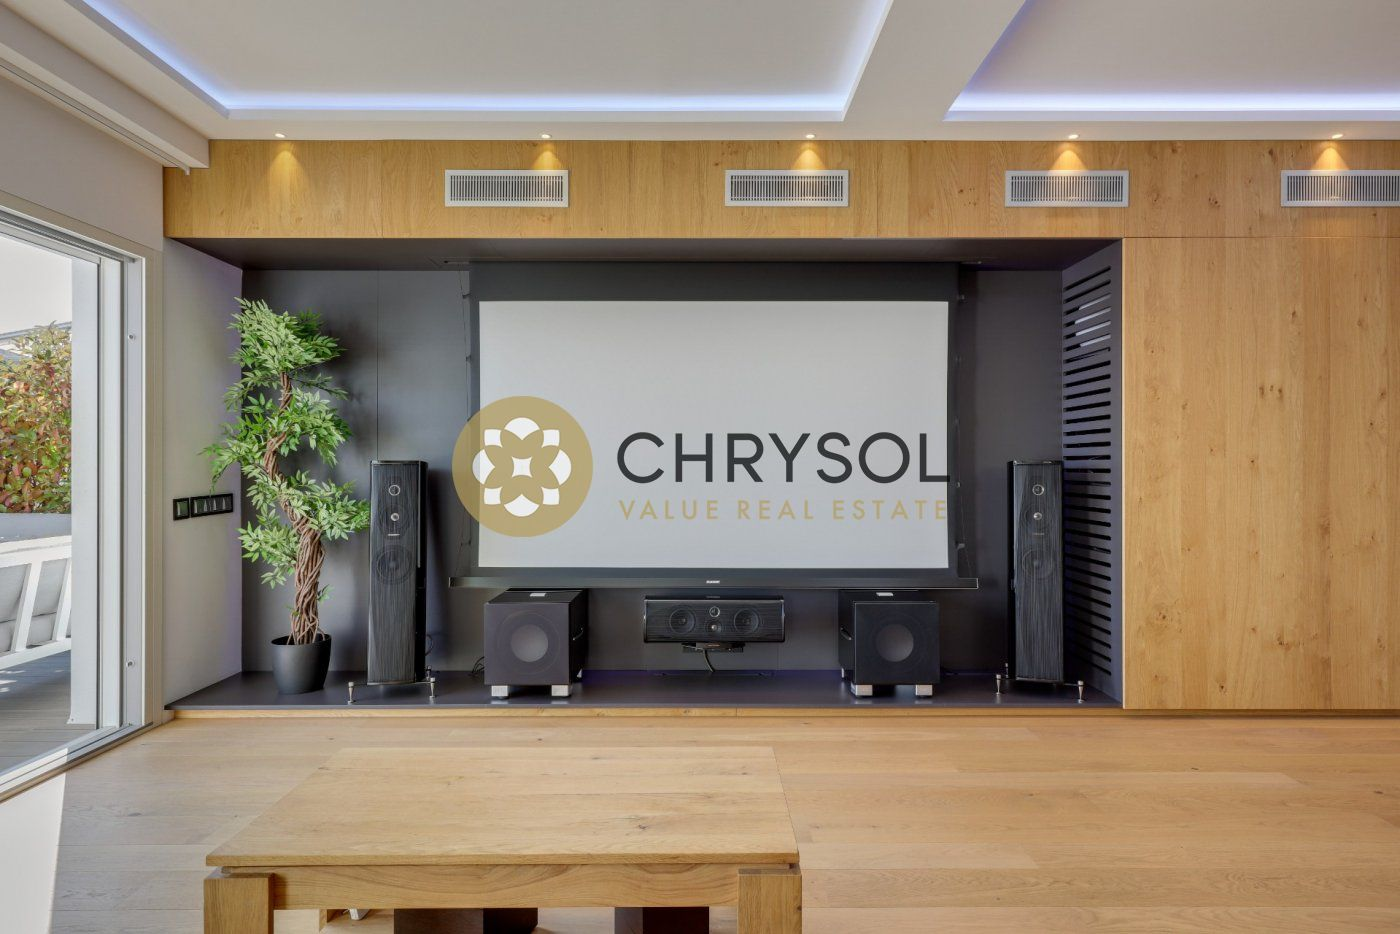 Photogallery - 35 - Chrysol Value